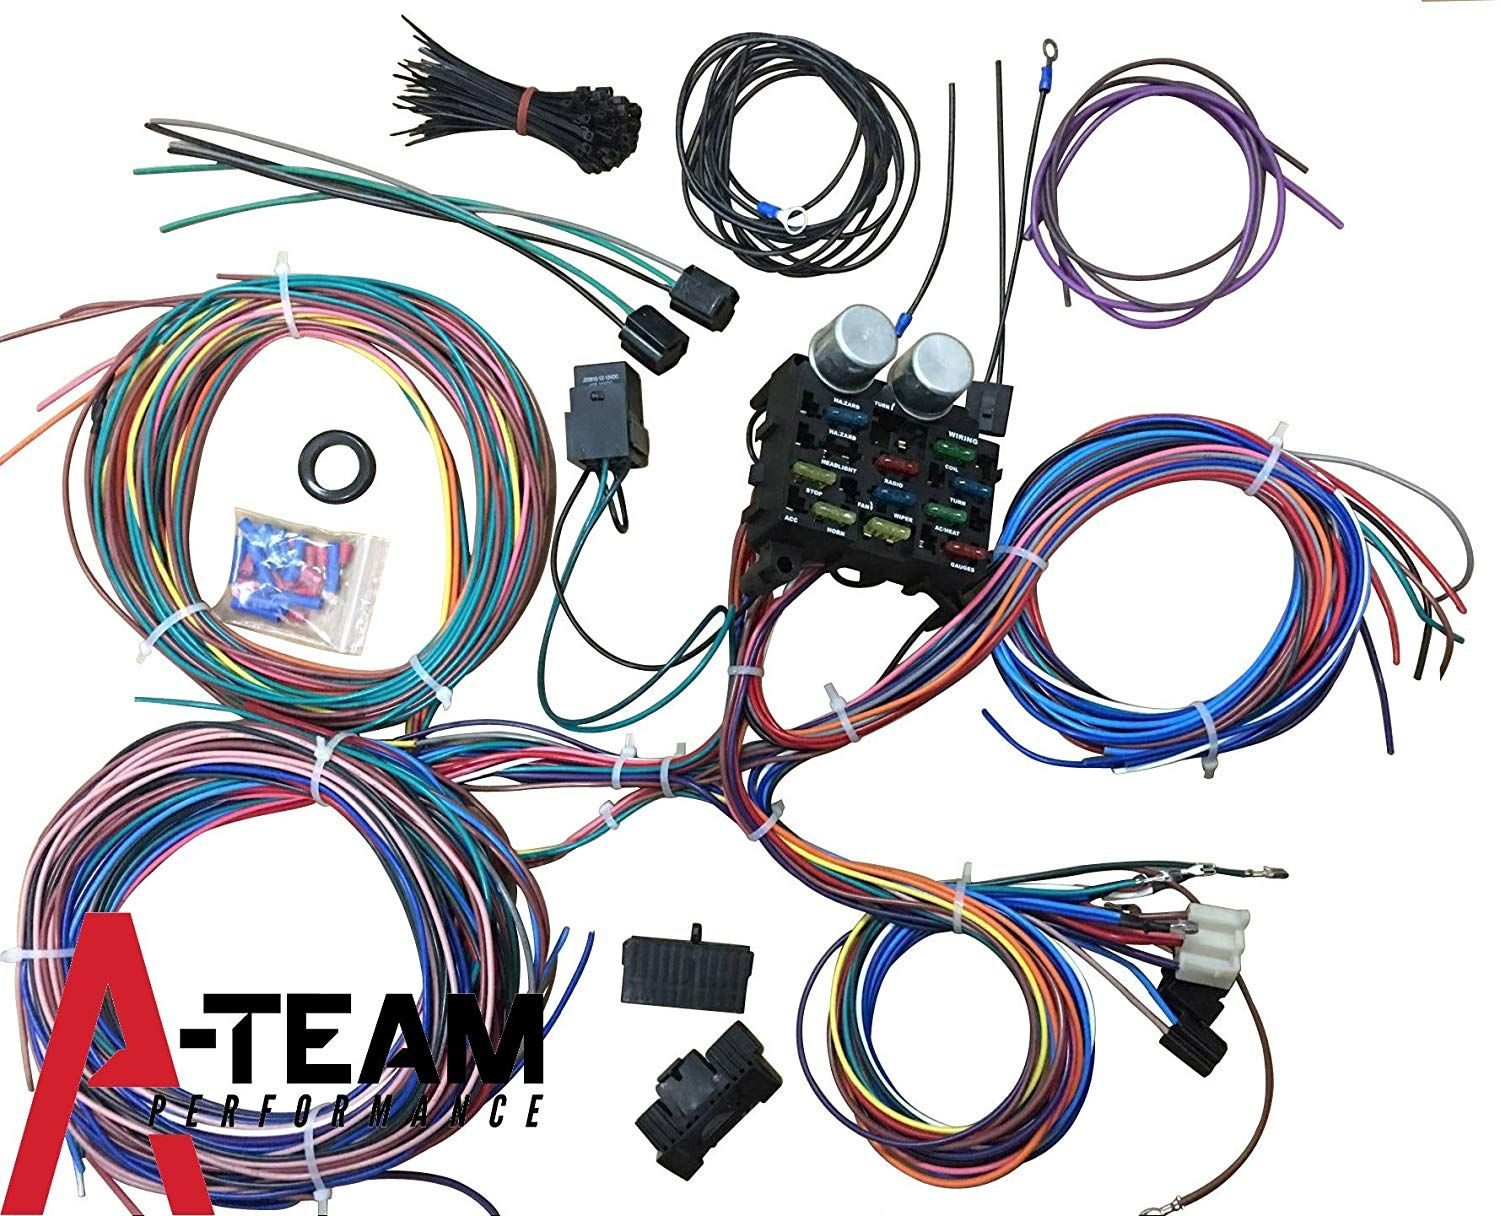 hight resolution of a team performance 12 standard circuit universal wiring harness kit muscle car hot rod street rod new xl wire you can find more details by visiting the